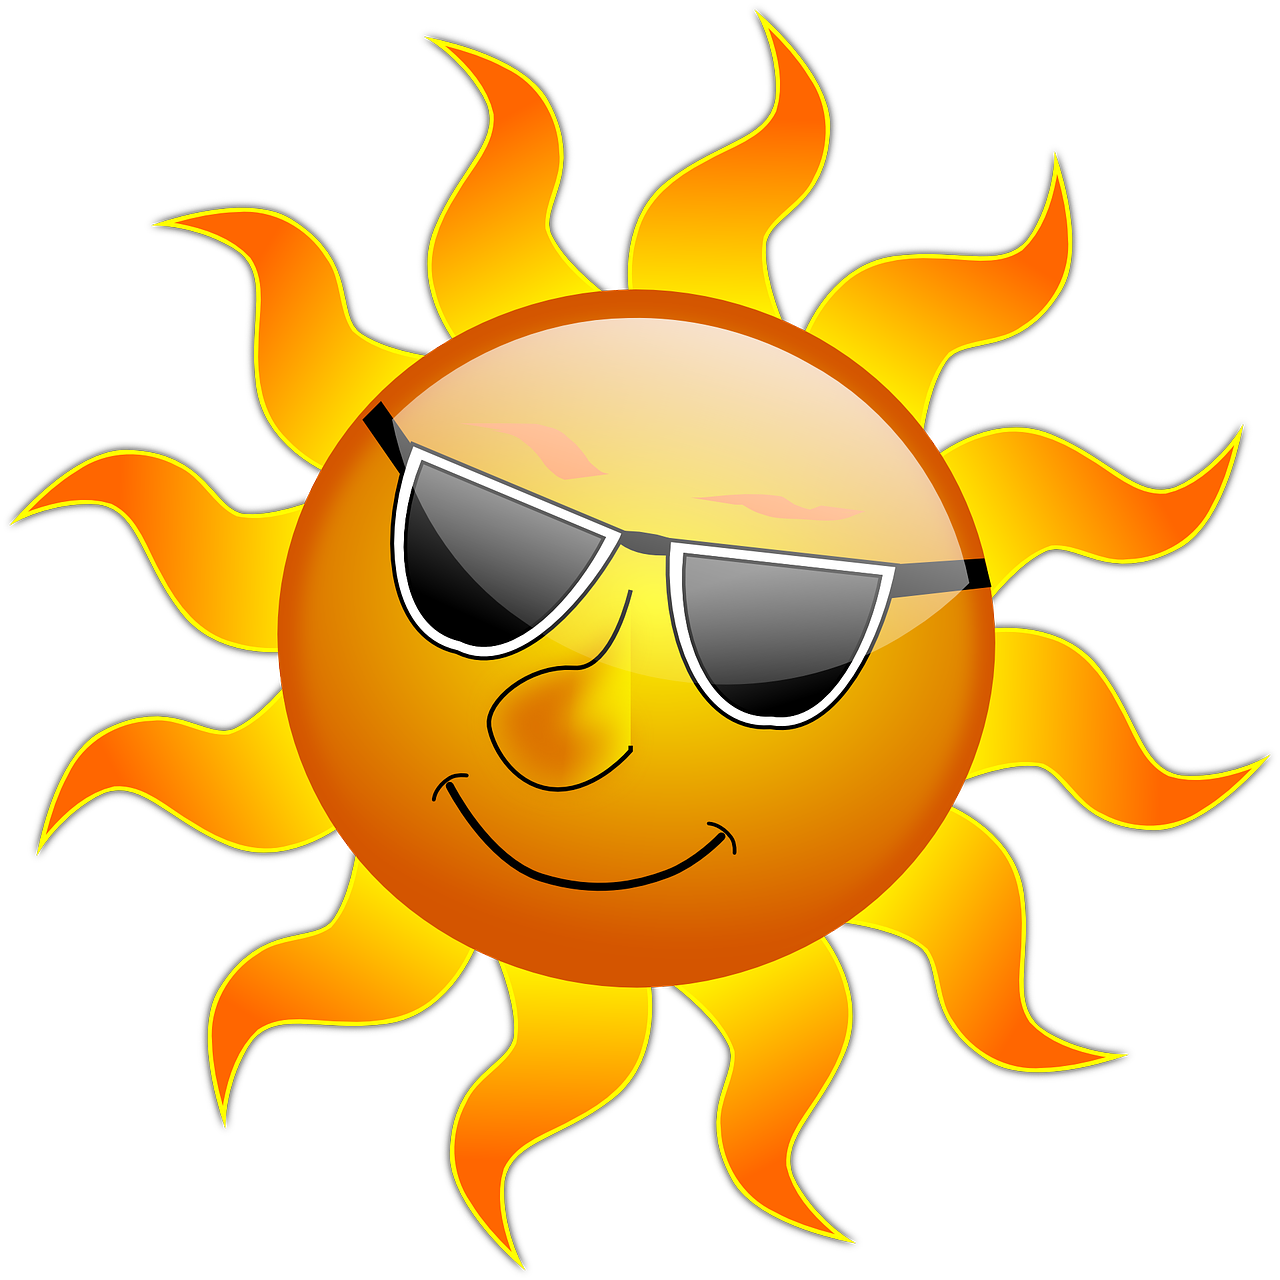 Hot clipart mild weather. Best dog house for